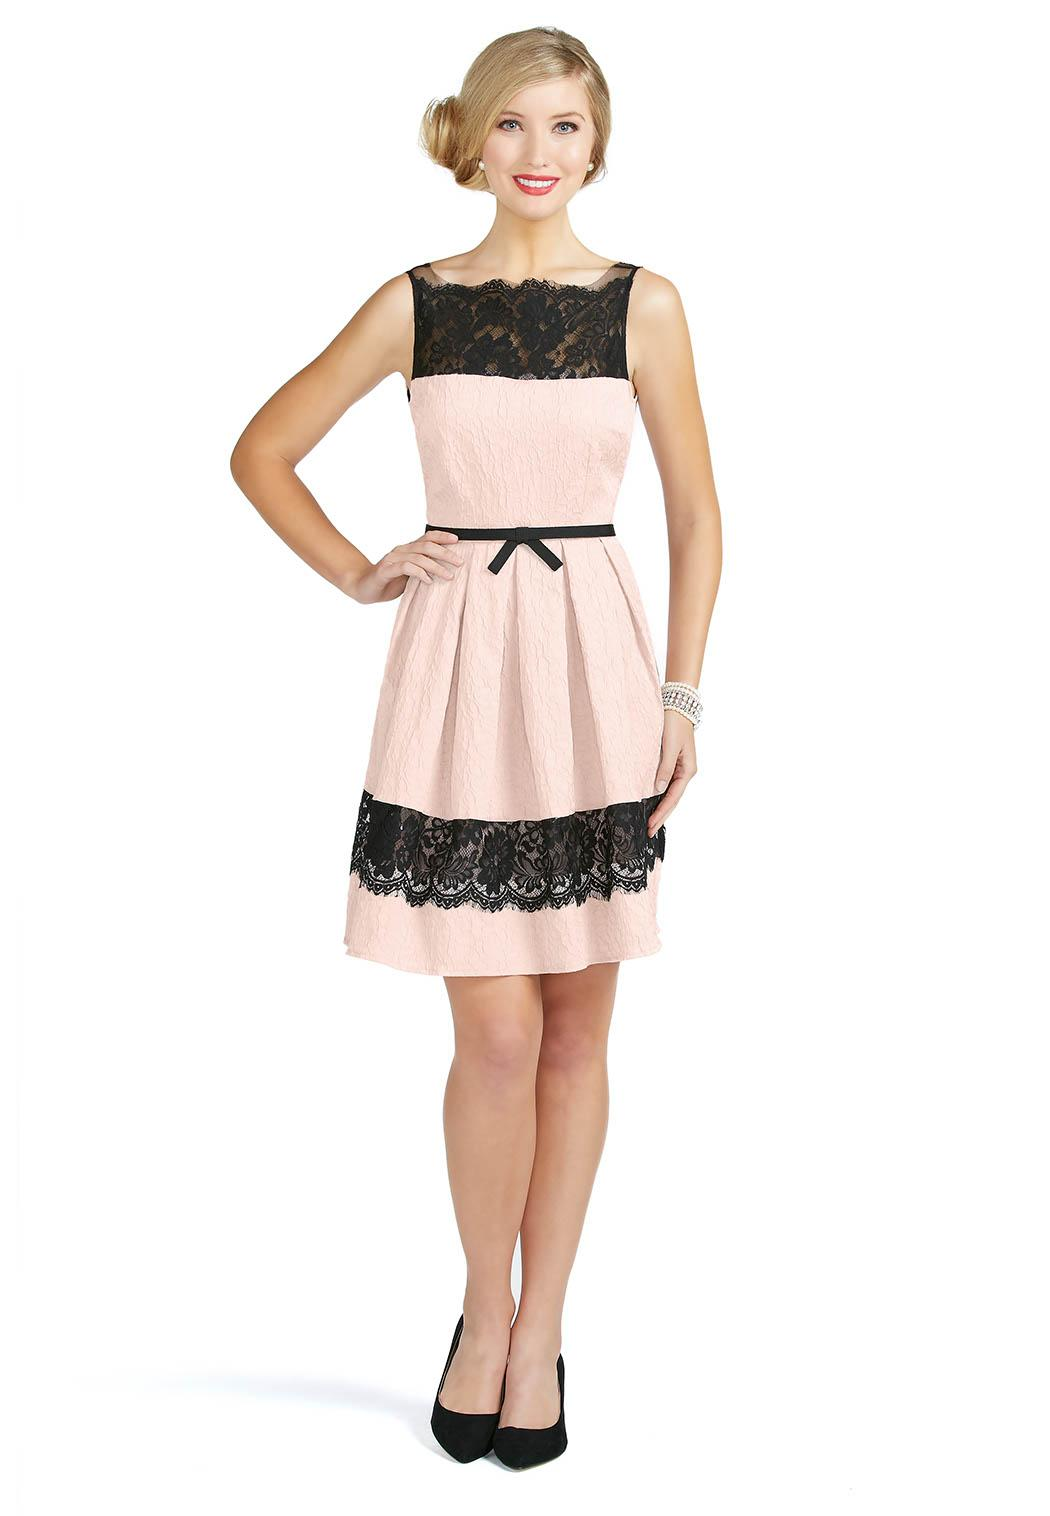 Home junior misses dresses banded lace panel dress style